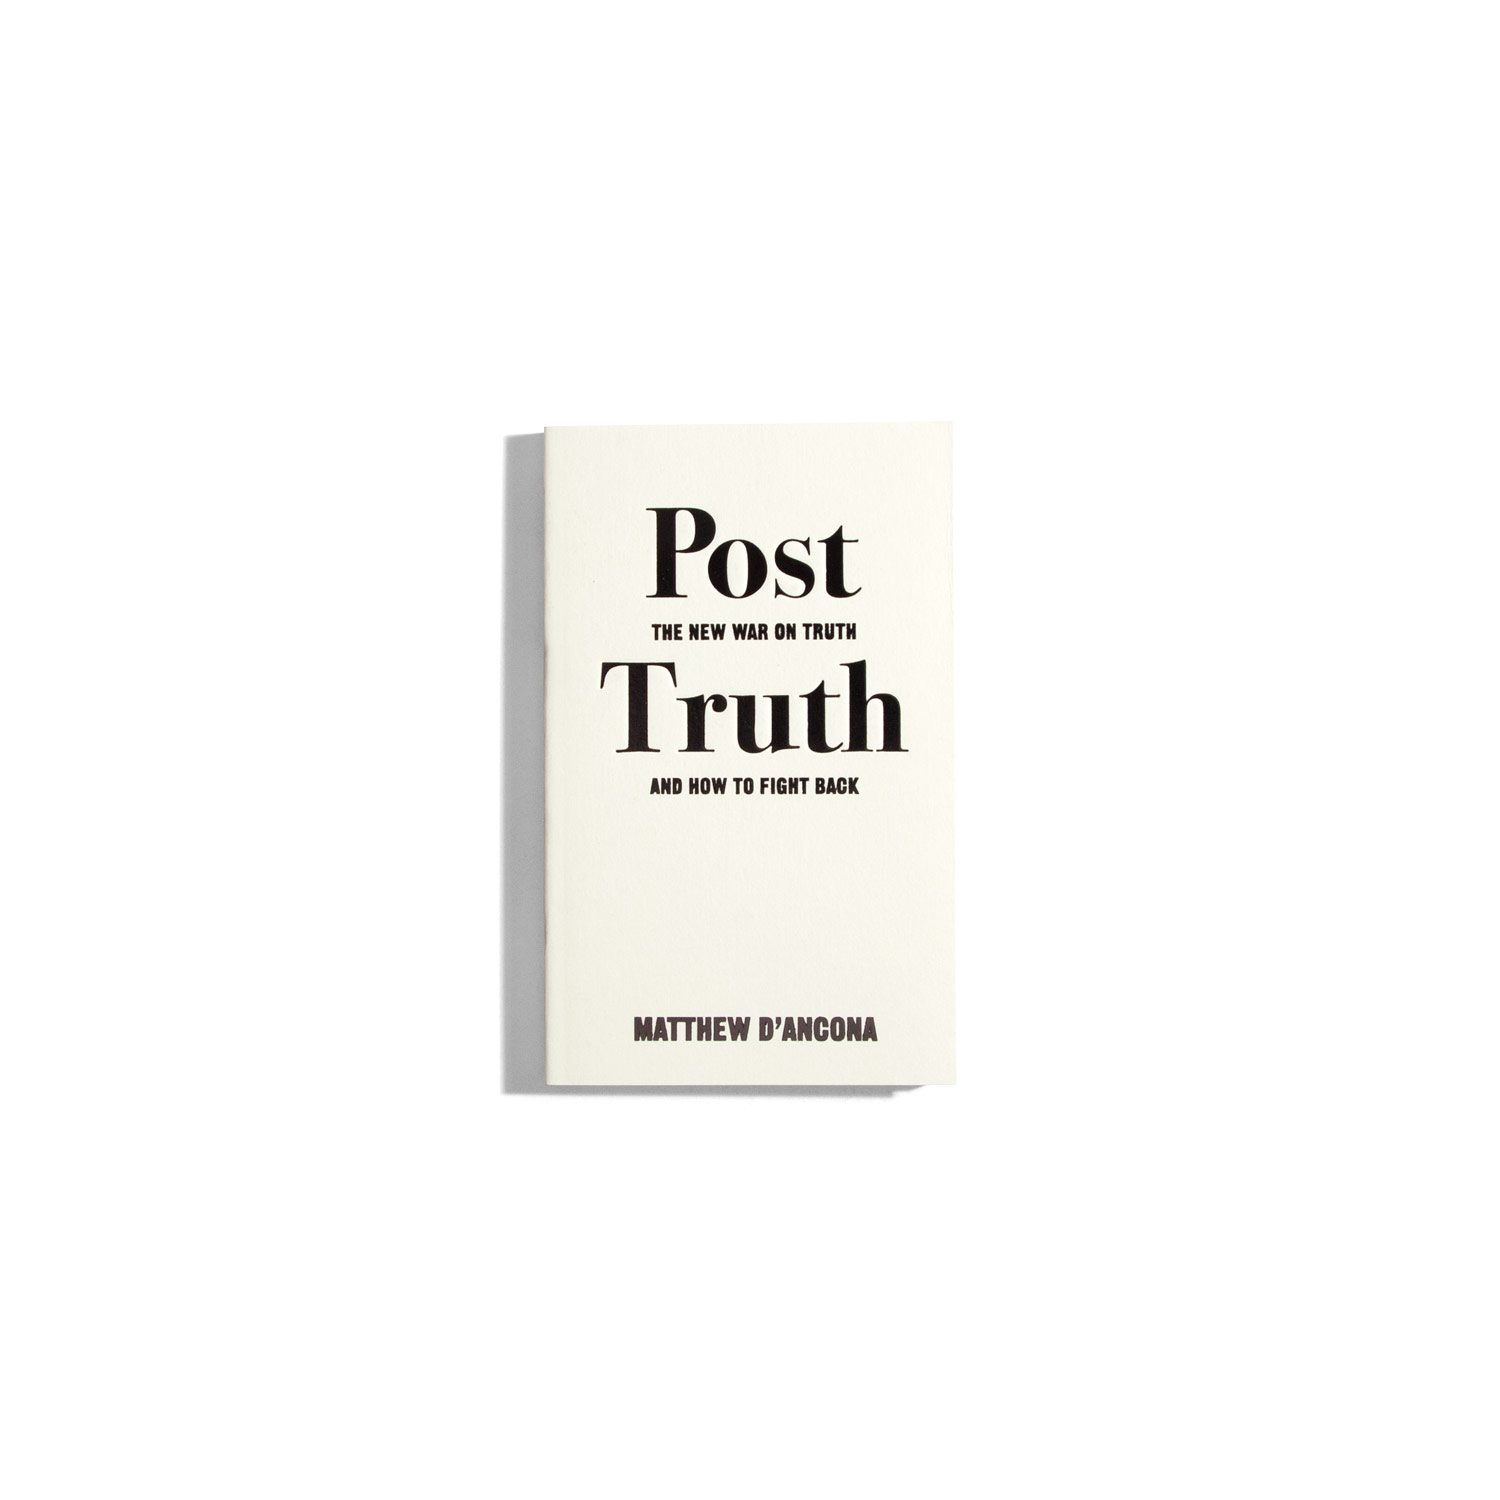 Post Truth: The new war on truth and how to fight back - Matthew D'Ancona